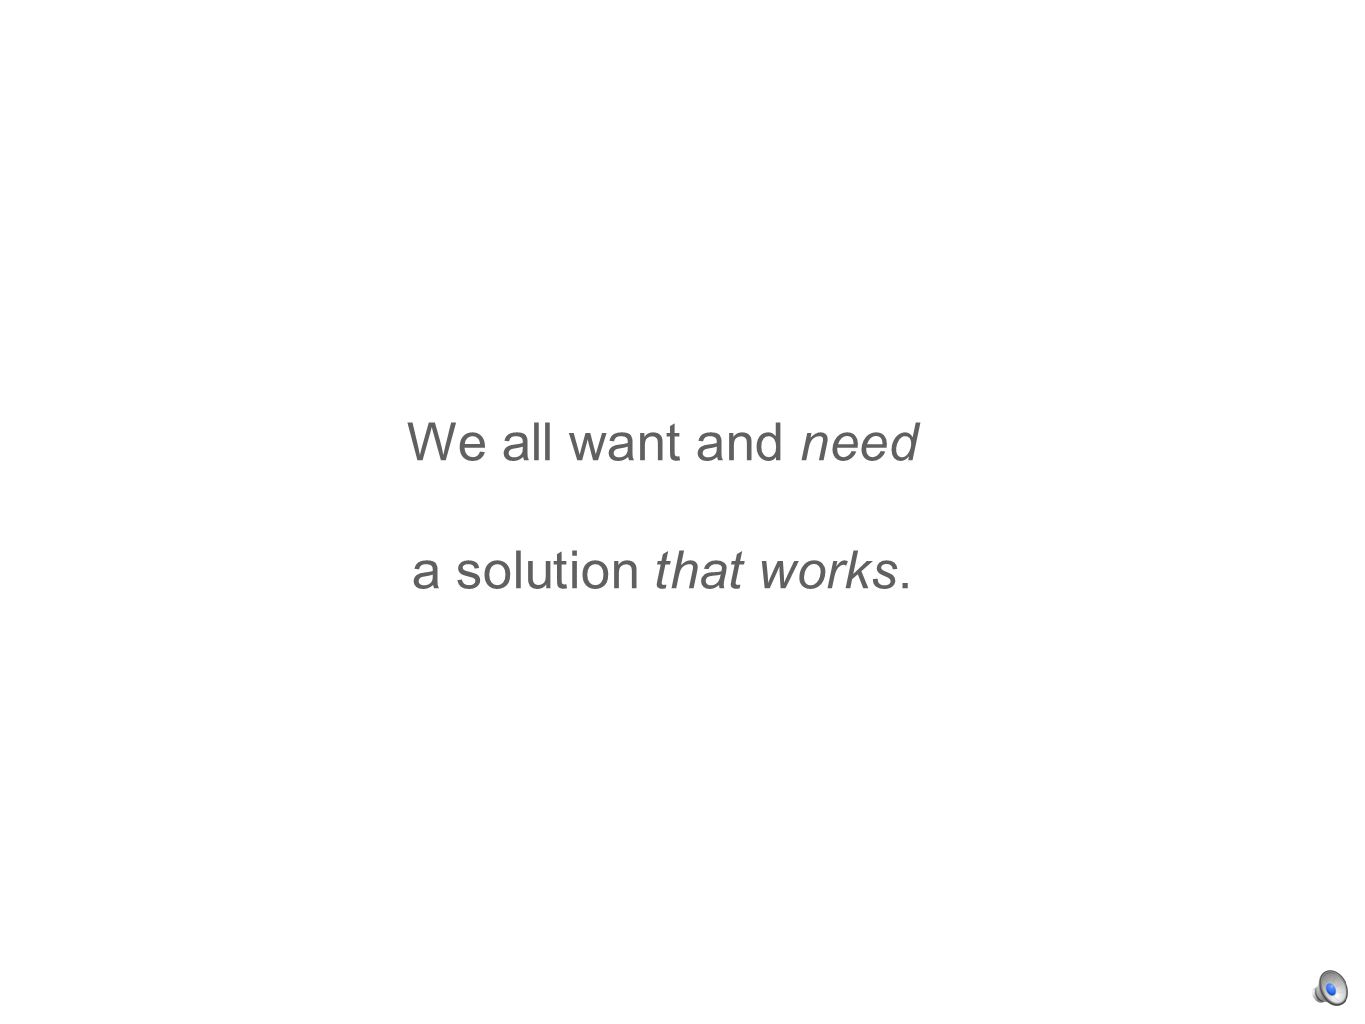 We all want and need a solution that works.